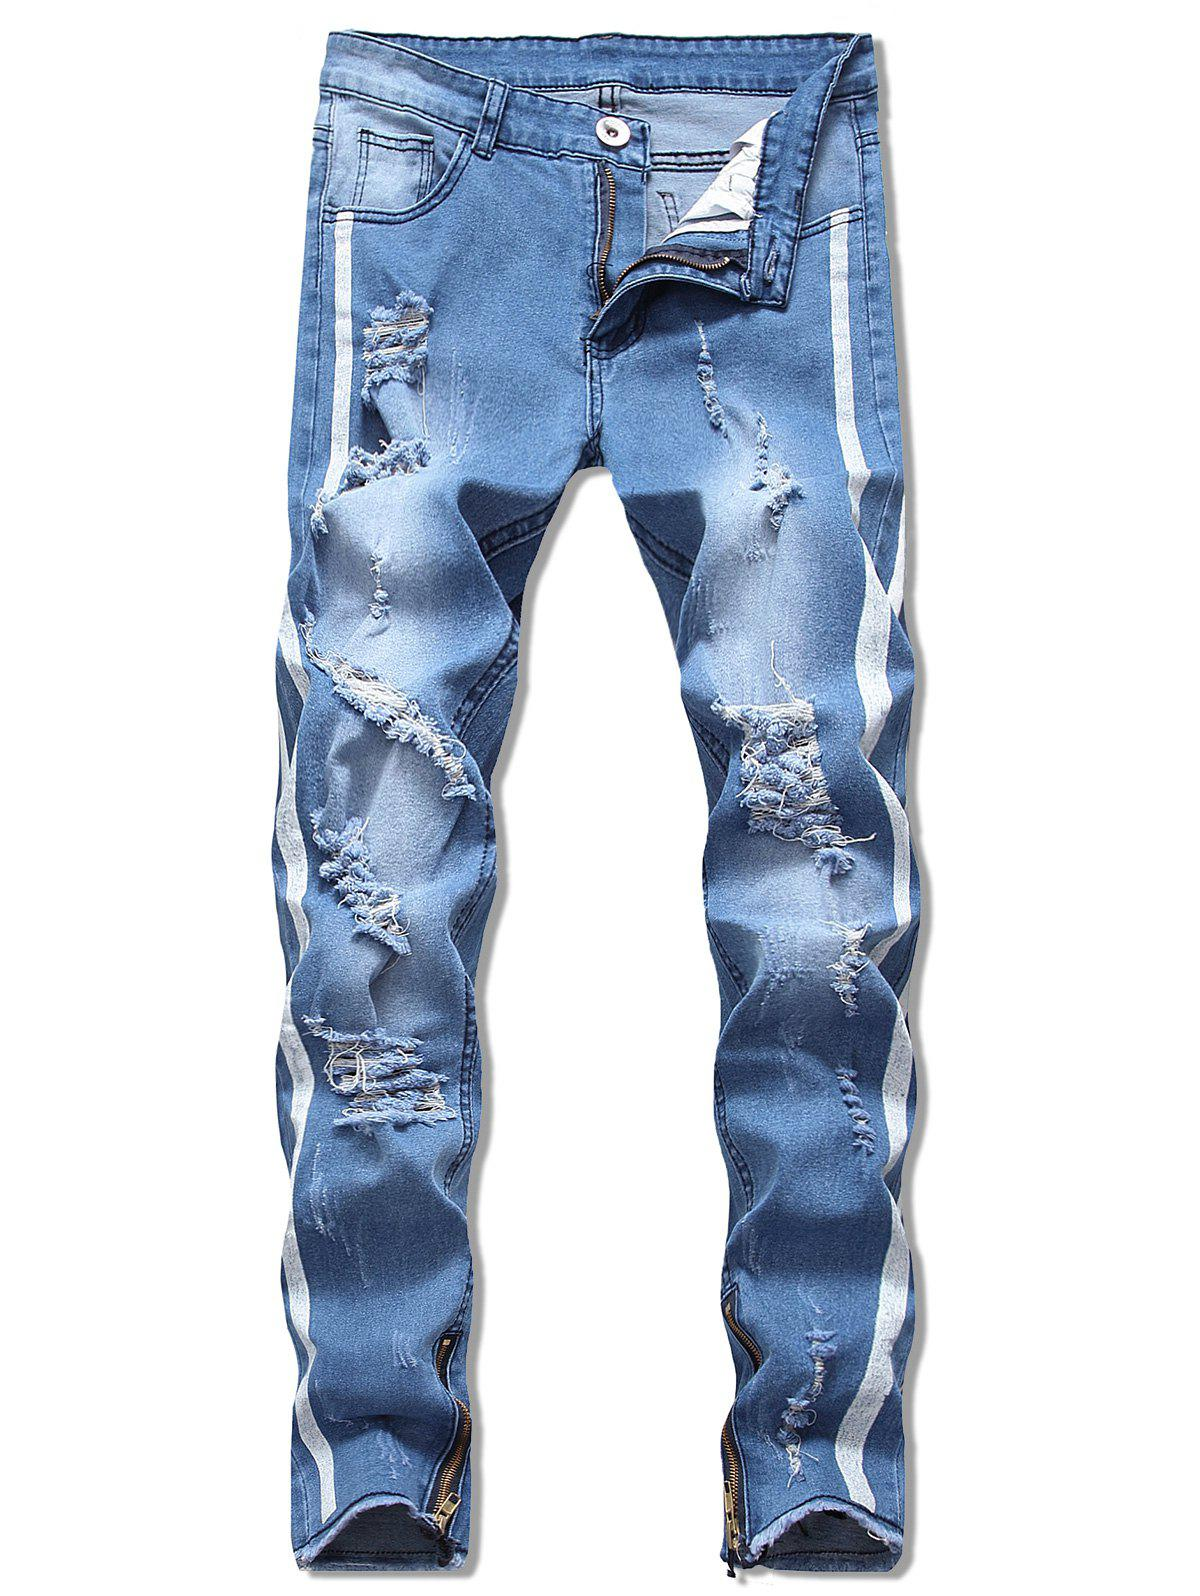 Chic Leg Zipper Embellished Destroyed Jeans